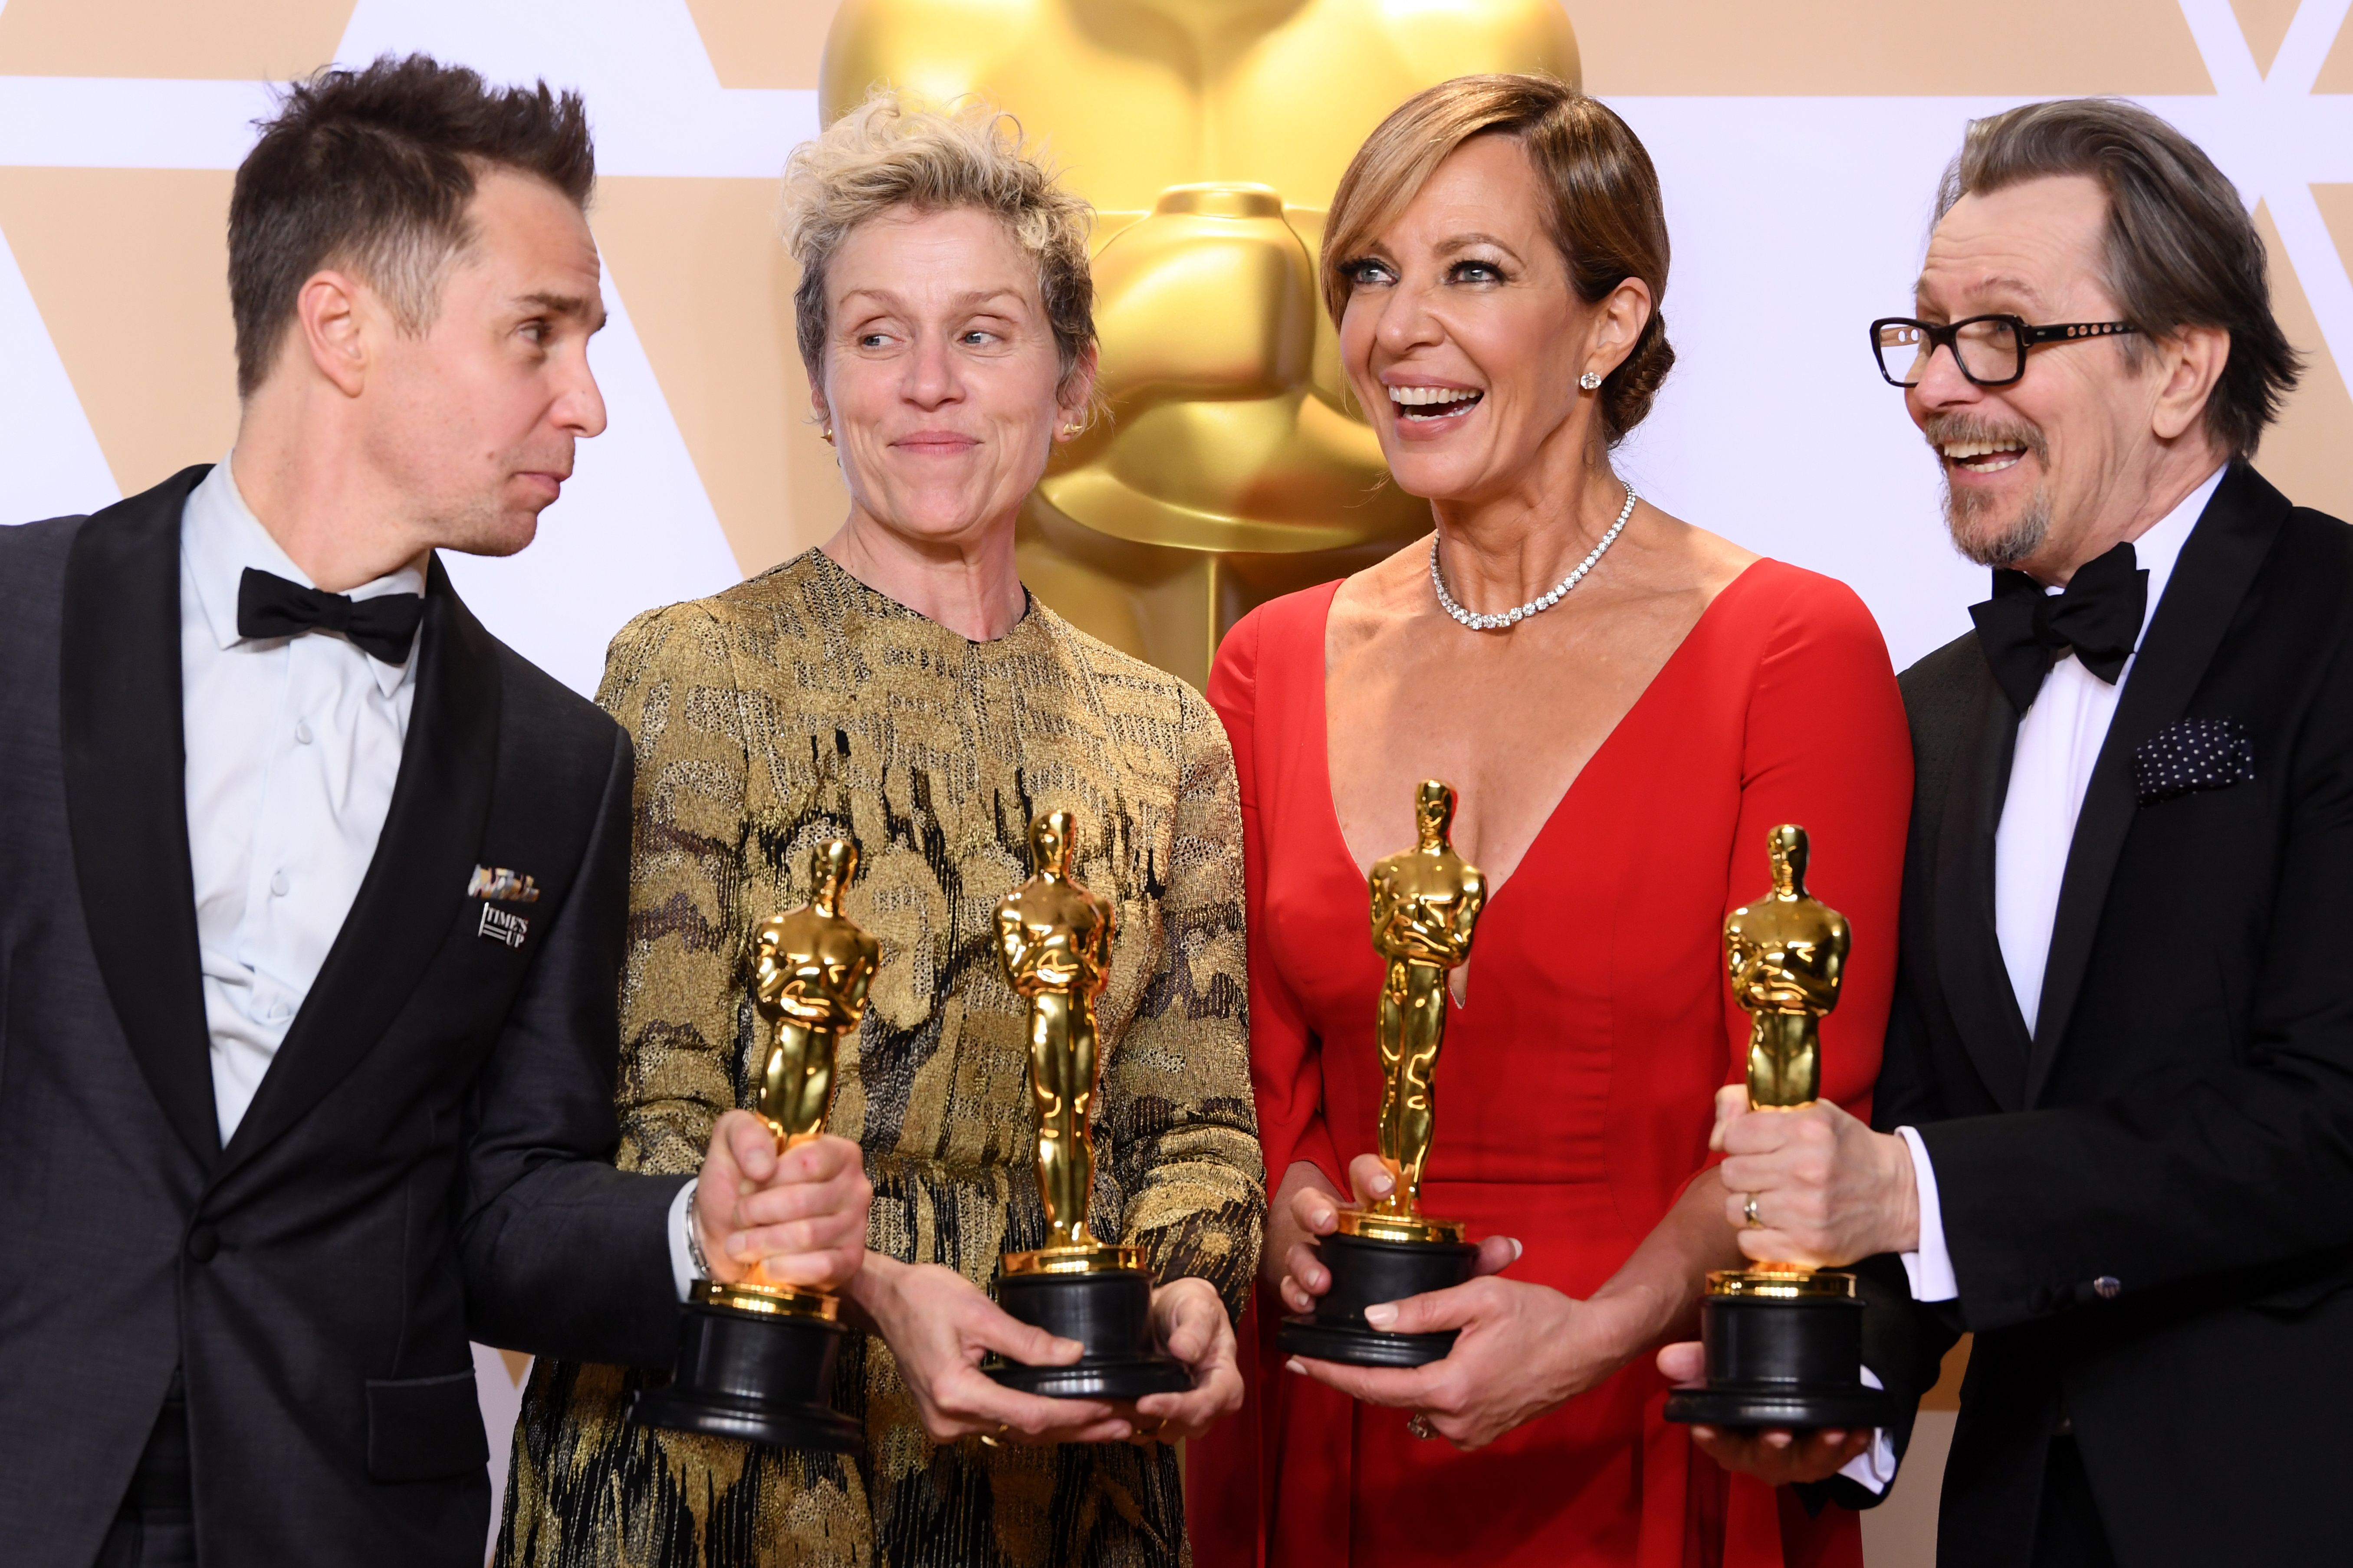 Oscars Producer: Moved Categories Won't Be Edited If Winners 'Stick Within the 90 Second' Rule